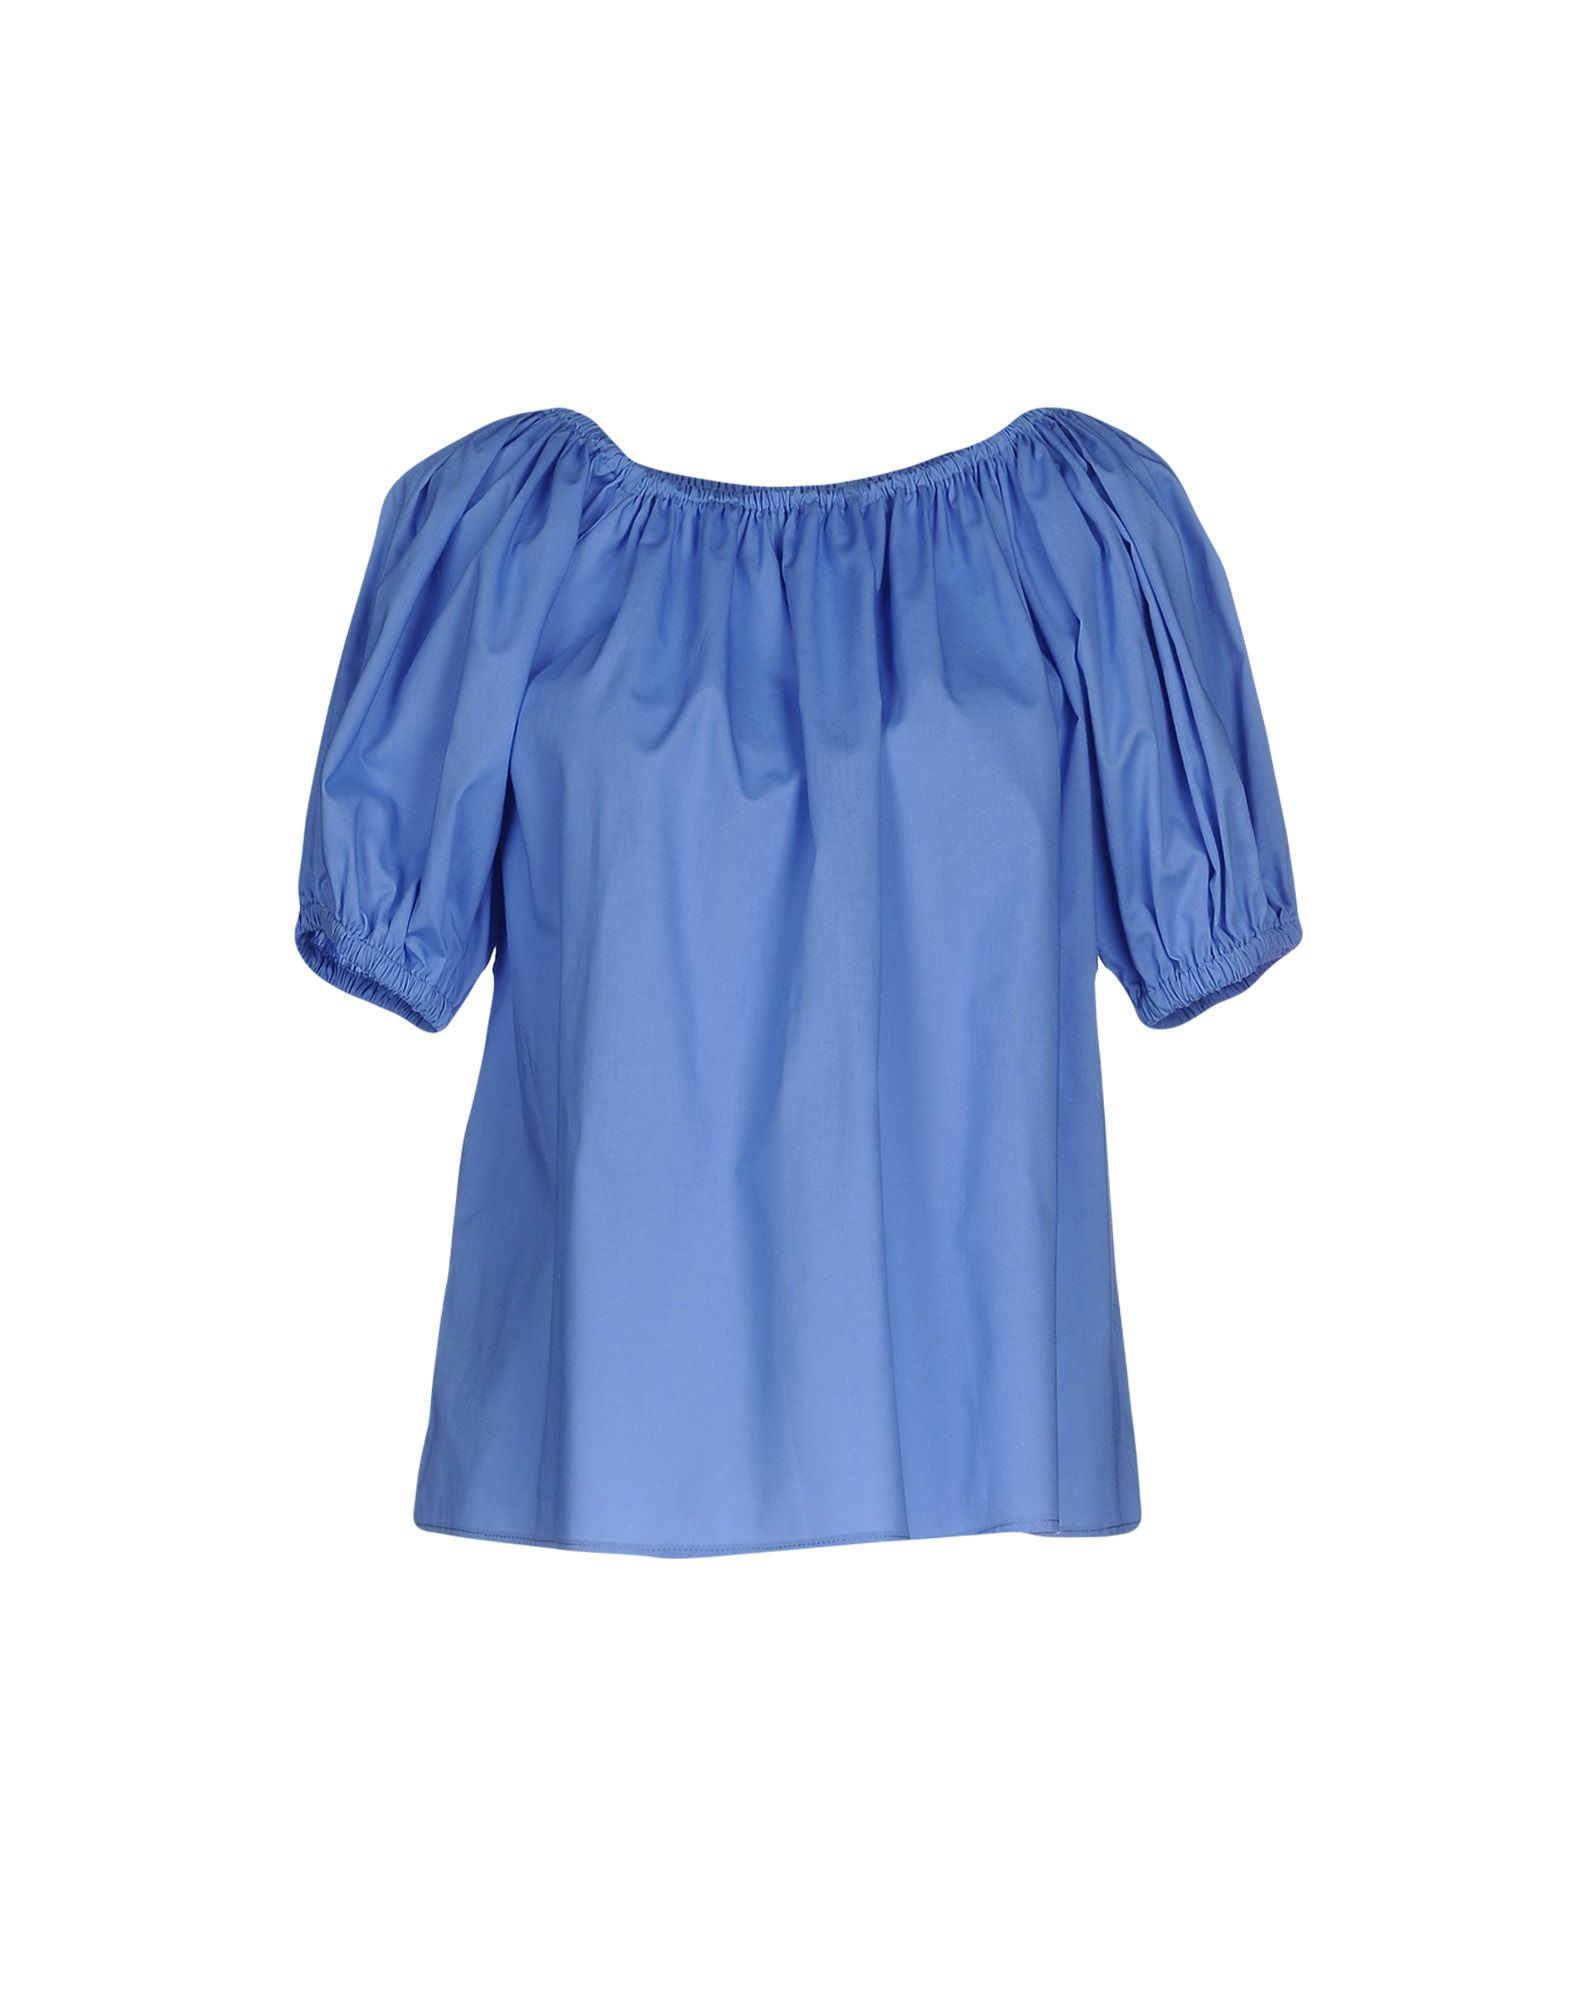 DOUUOD Blouse in Blue